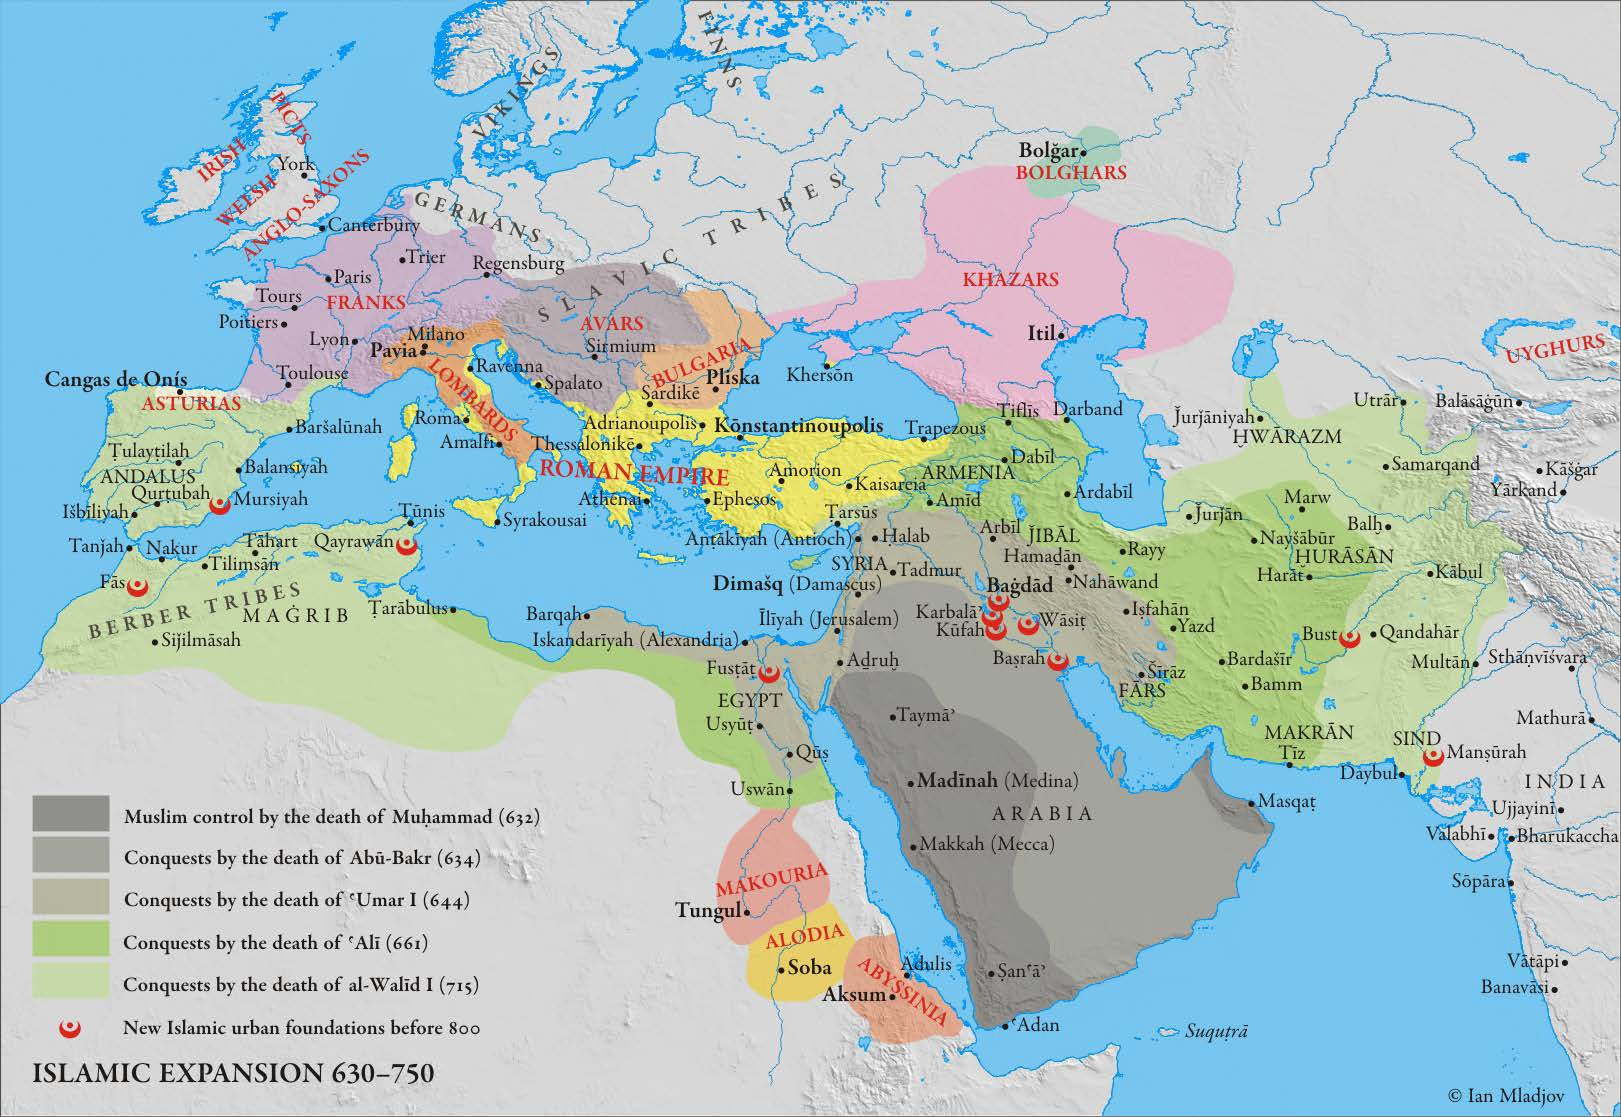 Map of Islamic Expansion 630-750